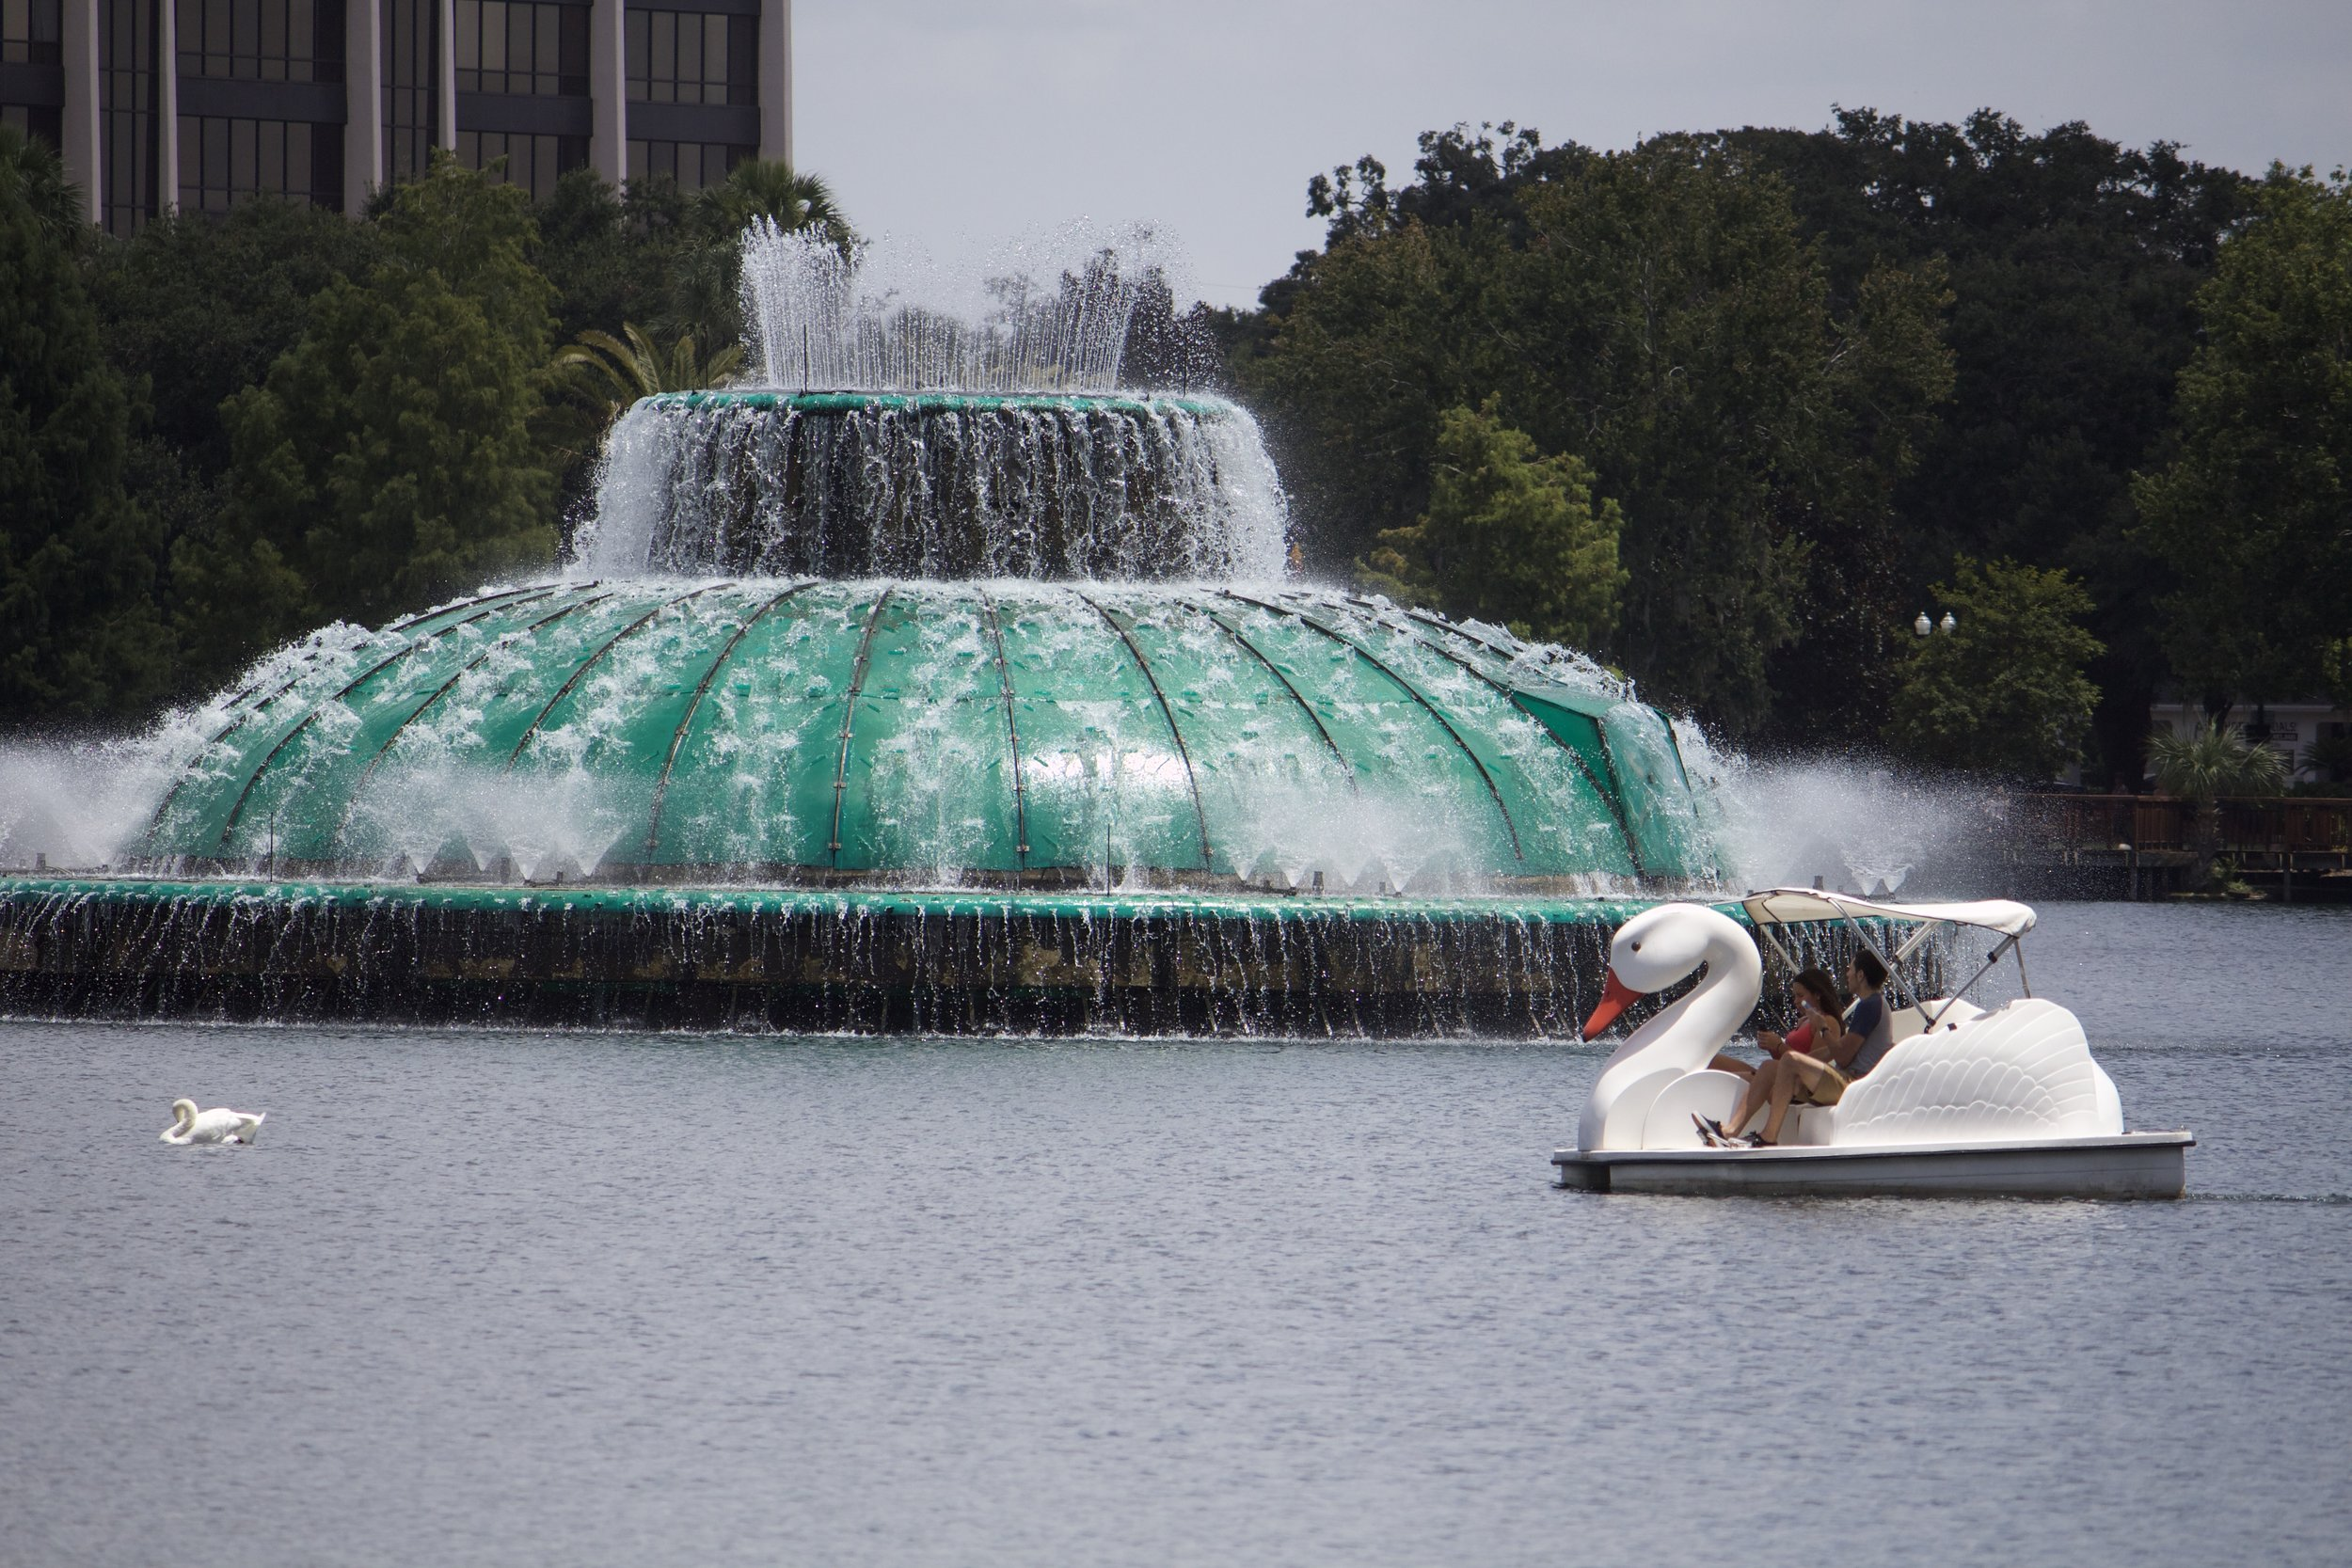 Swan Paddle Boat on Lake Eola